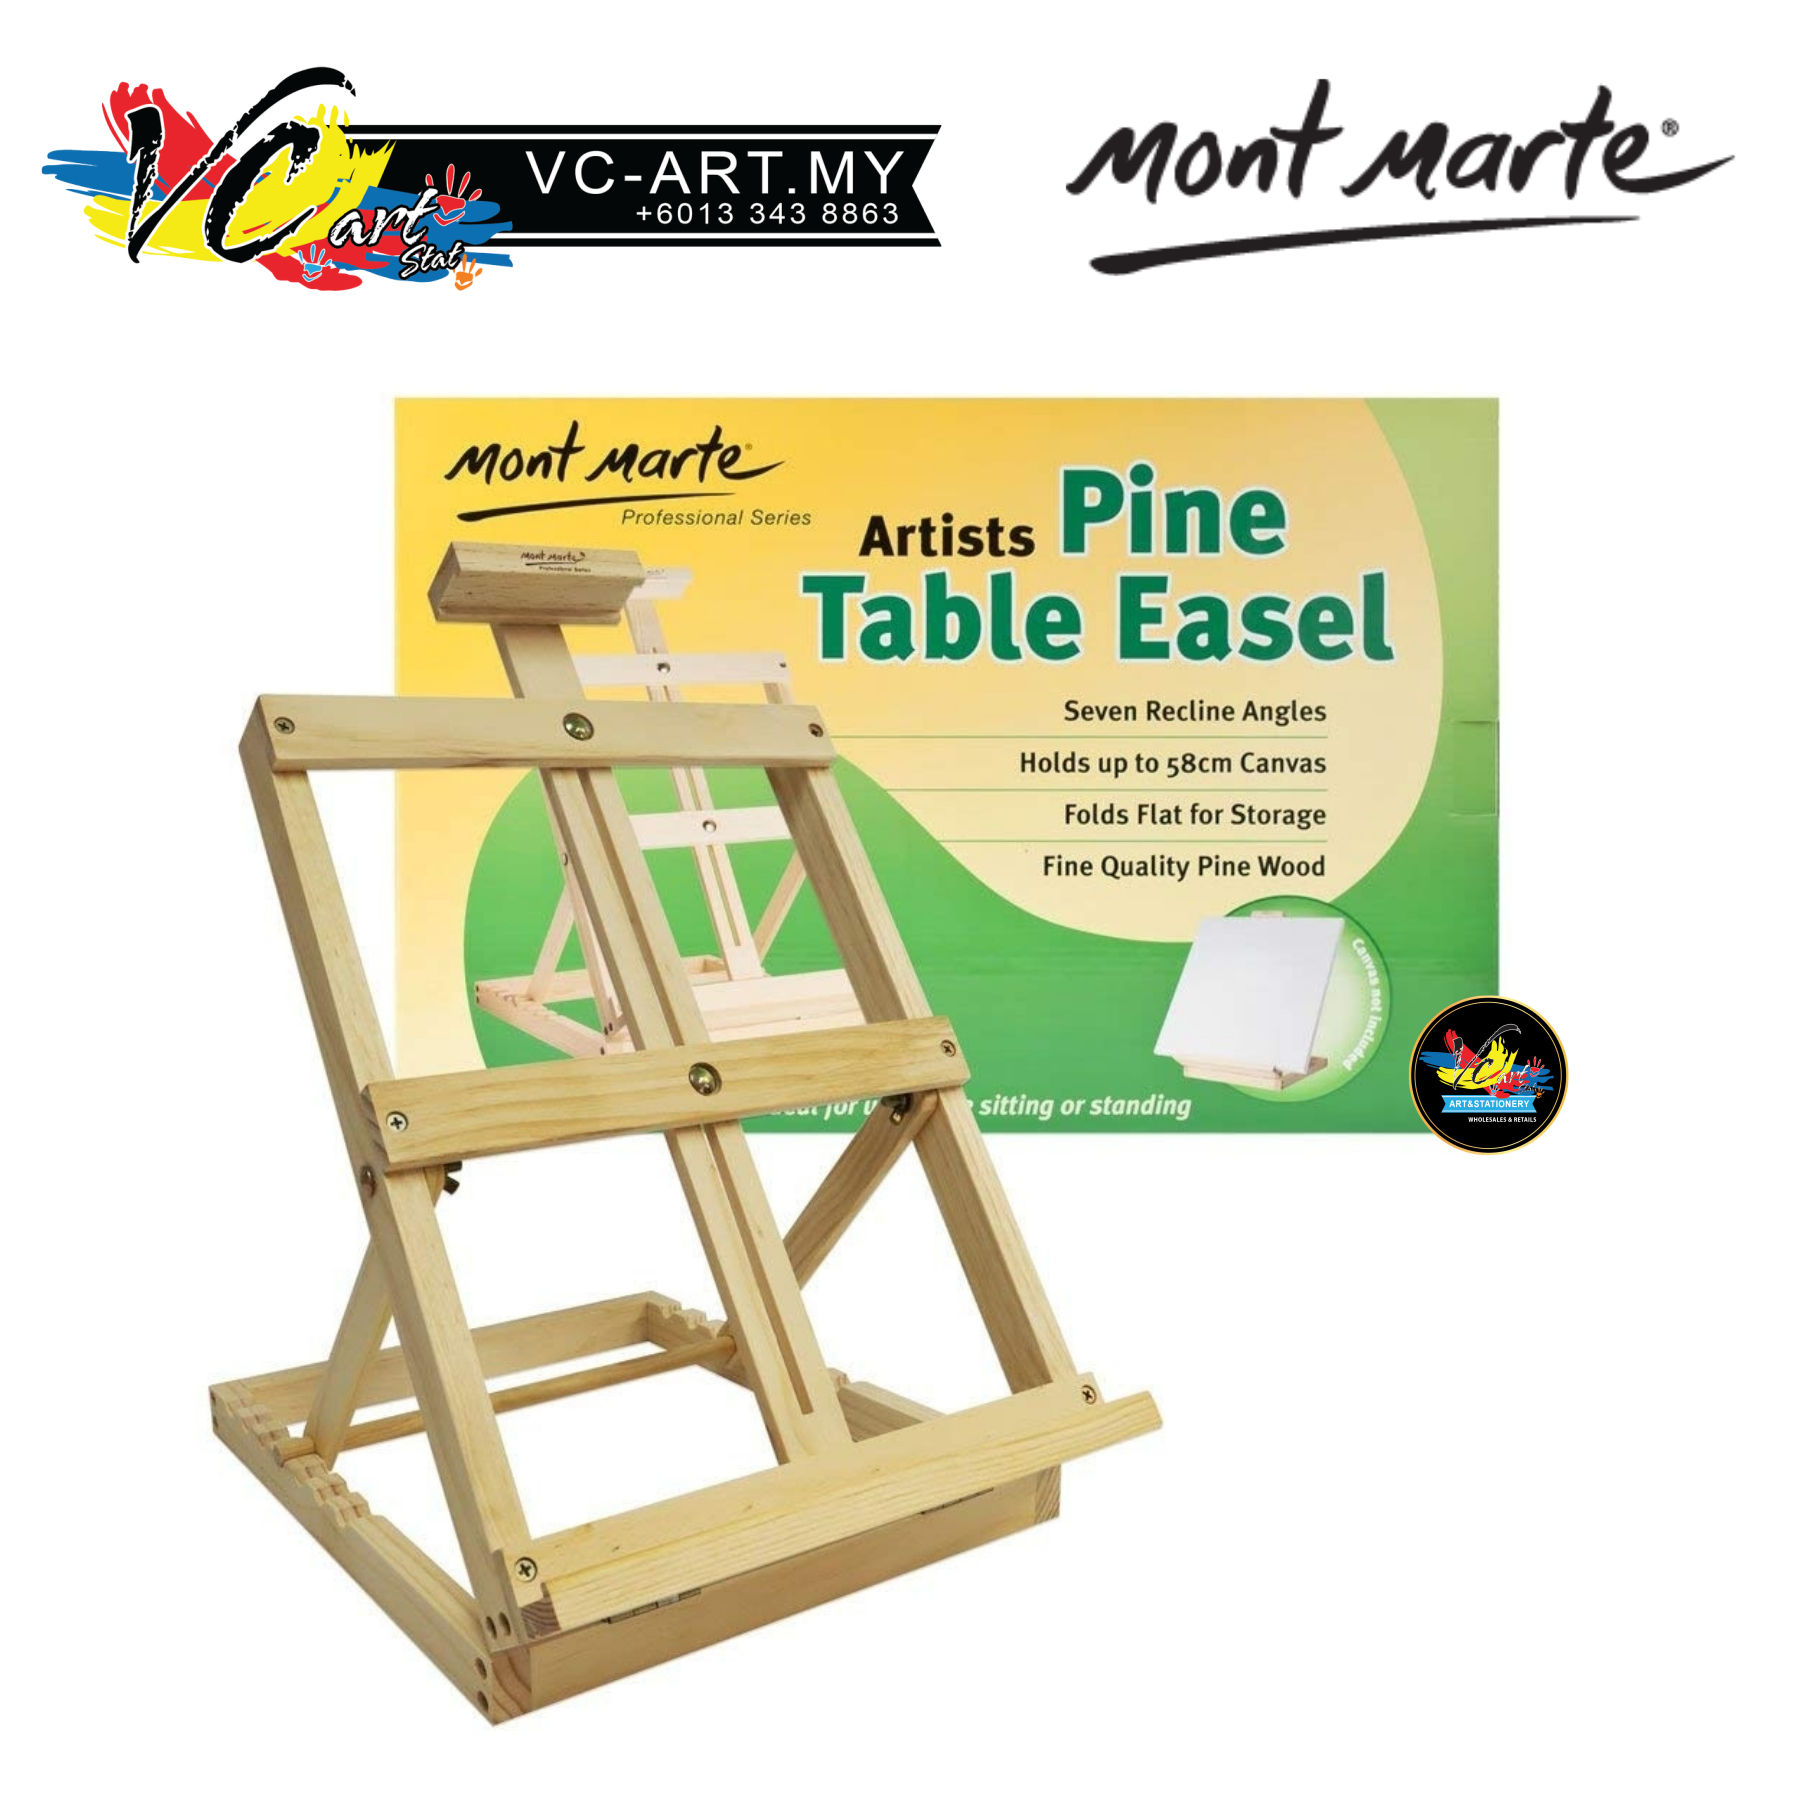 Mont Marte Artists Pine Table Easel - MCG0007